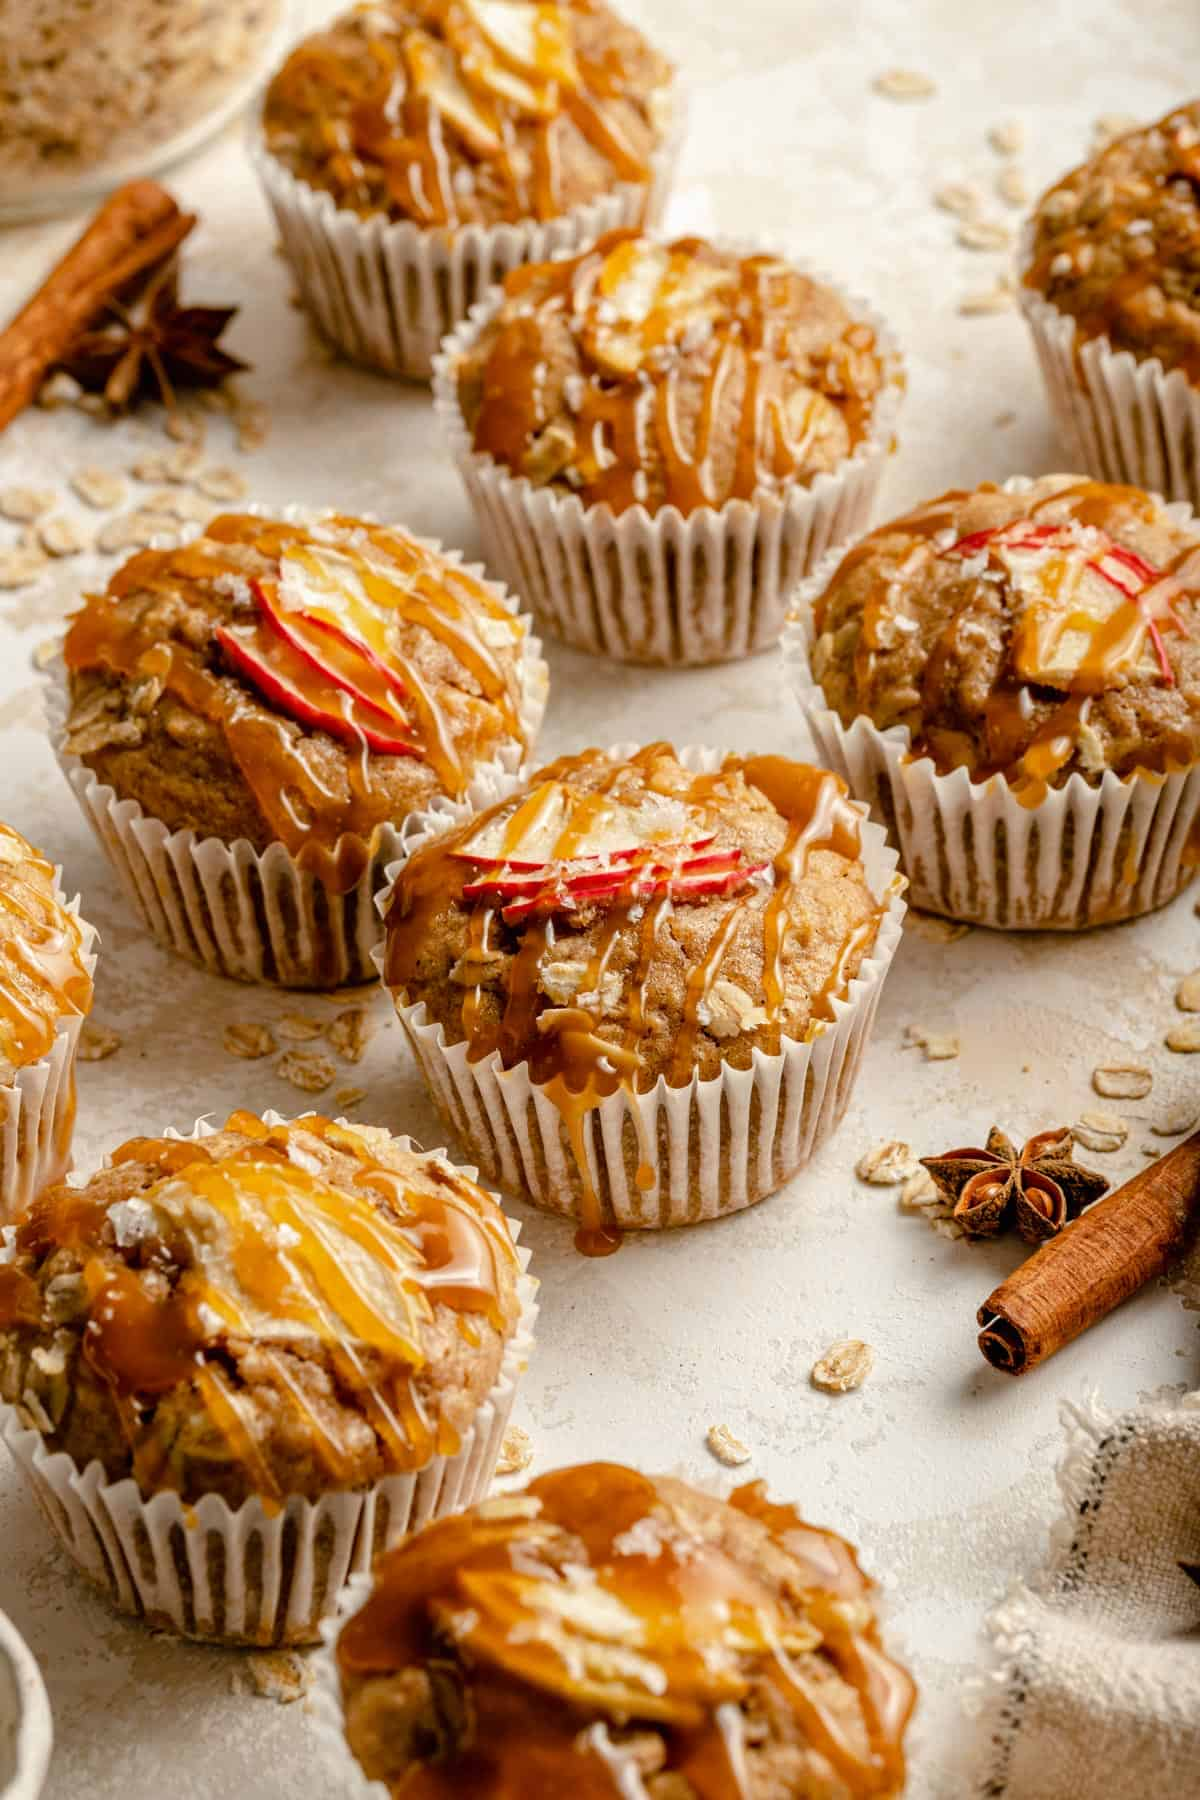 muffins in an array with caramel and spices surrounding